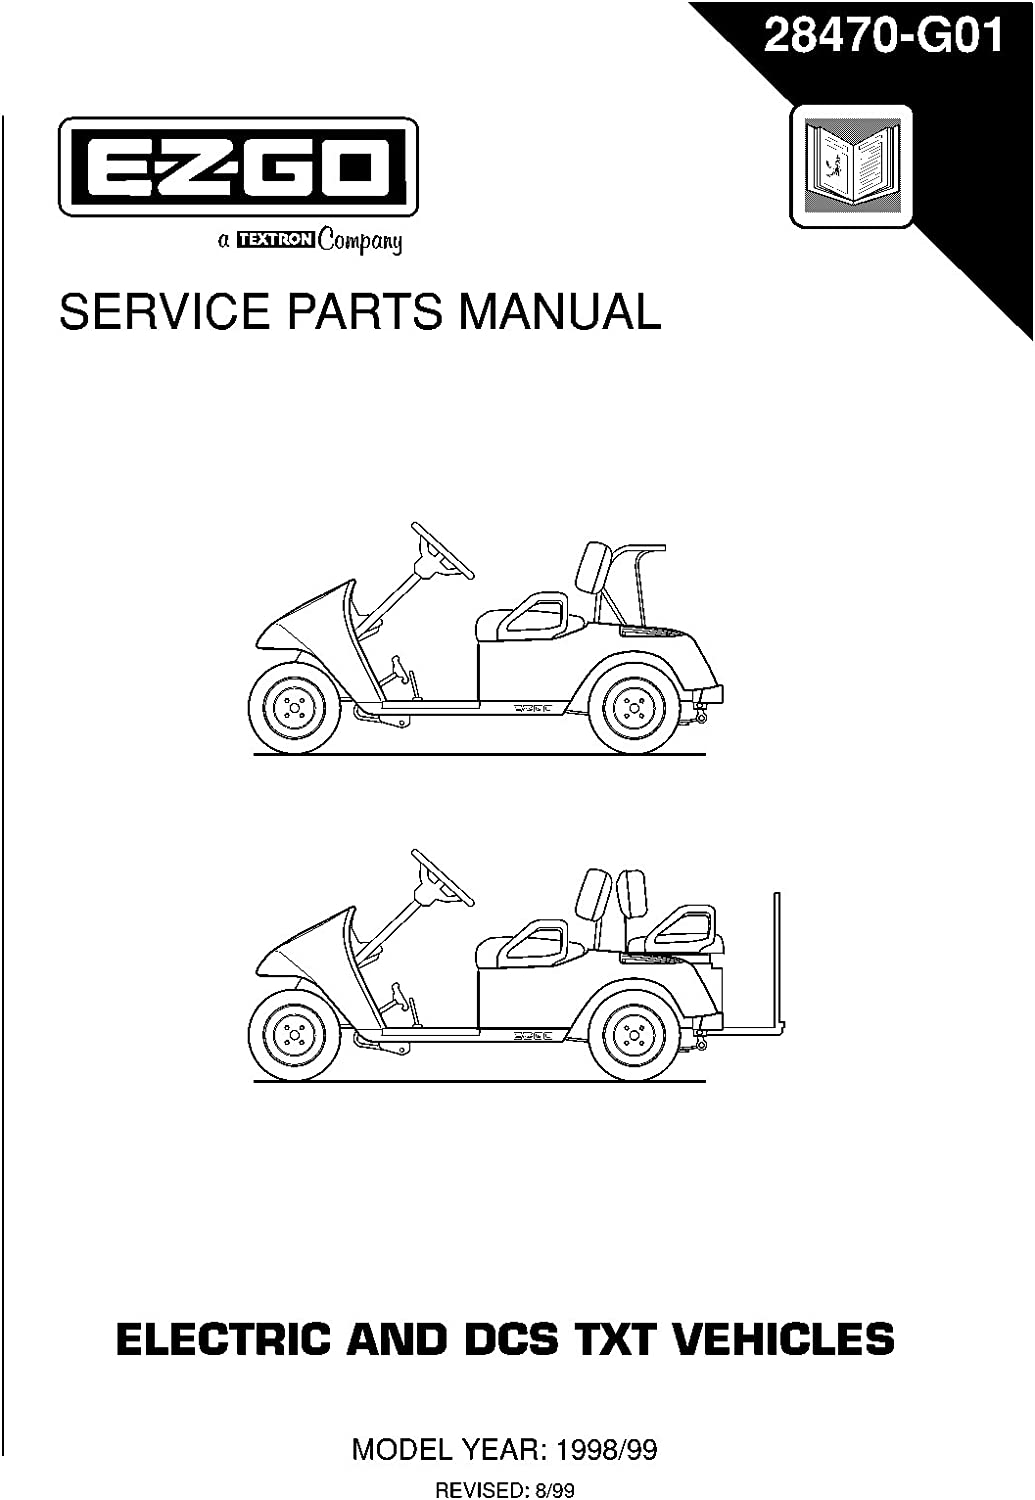 amazon.com : ezgo 28470g01 1998-1999 service parts manual for txt electric  golf vehicles : garden & outdoor  amazon.com